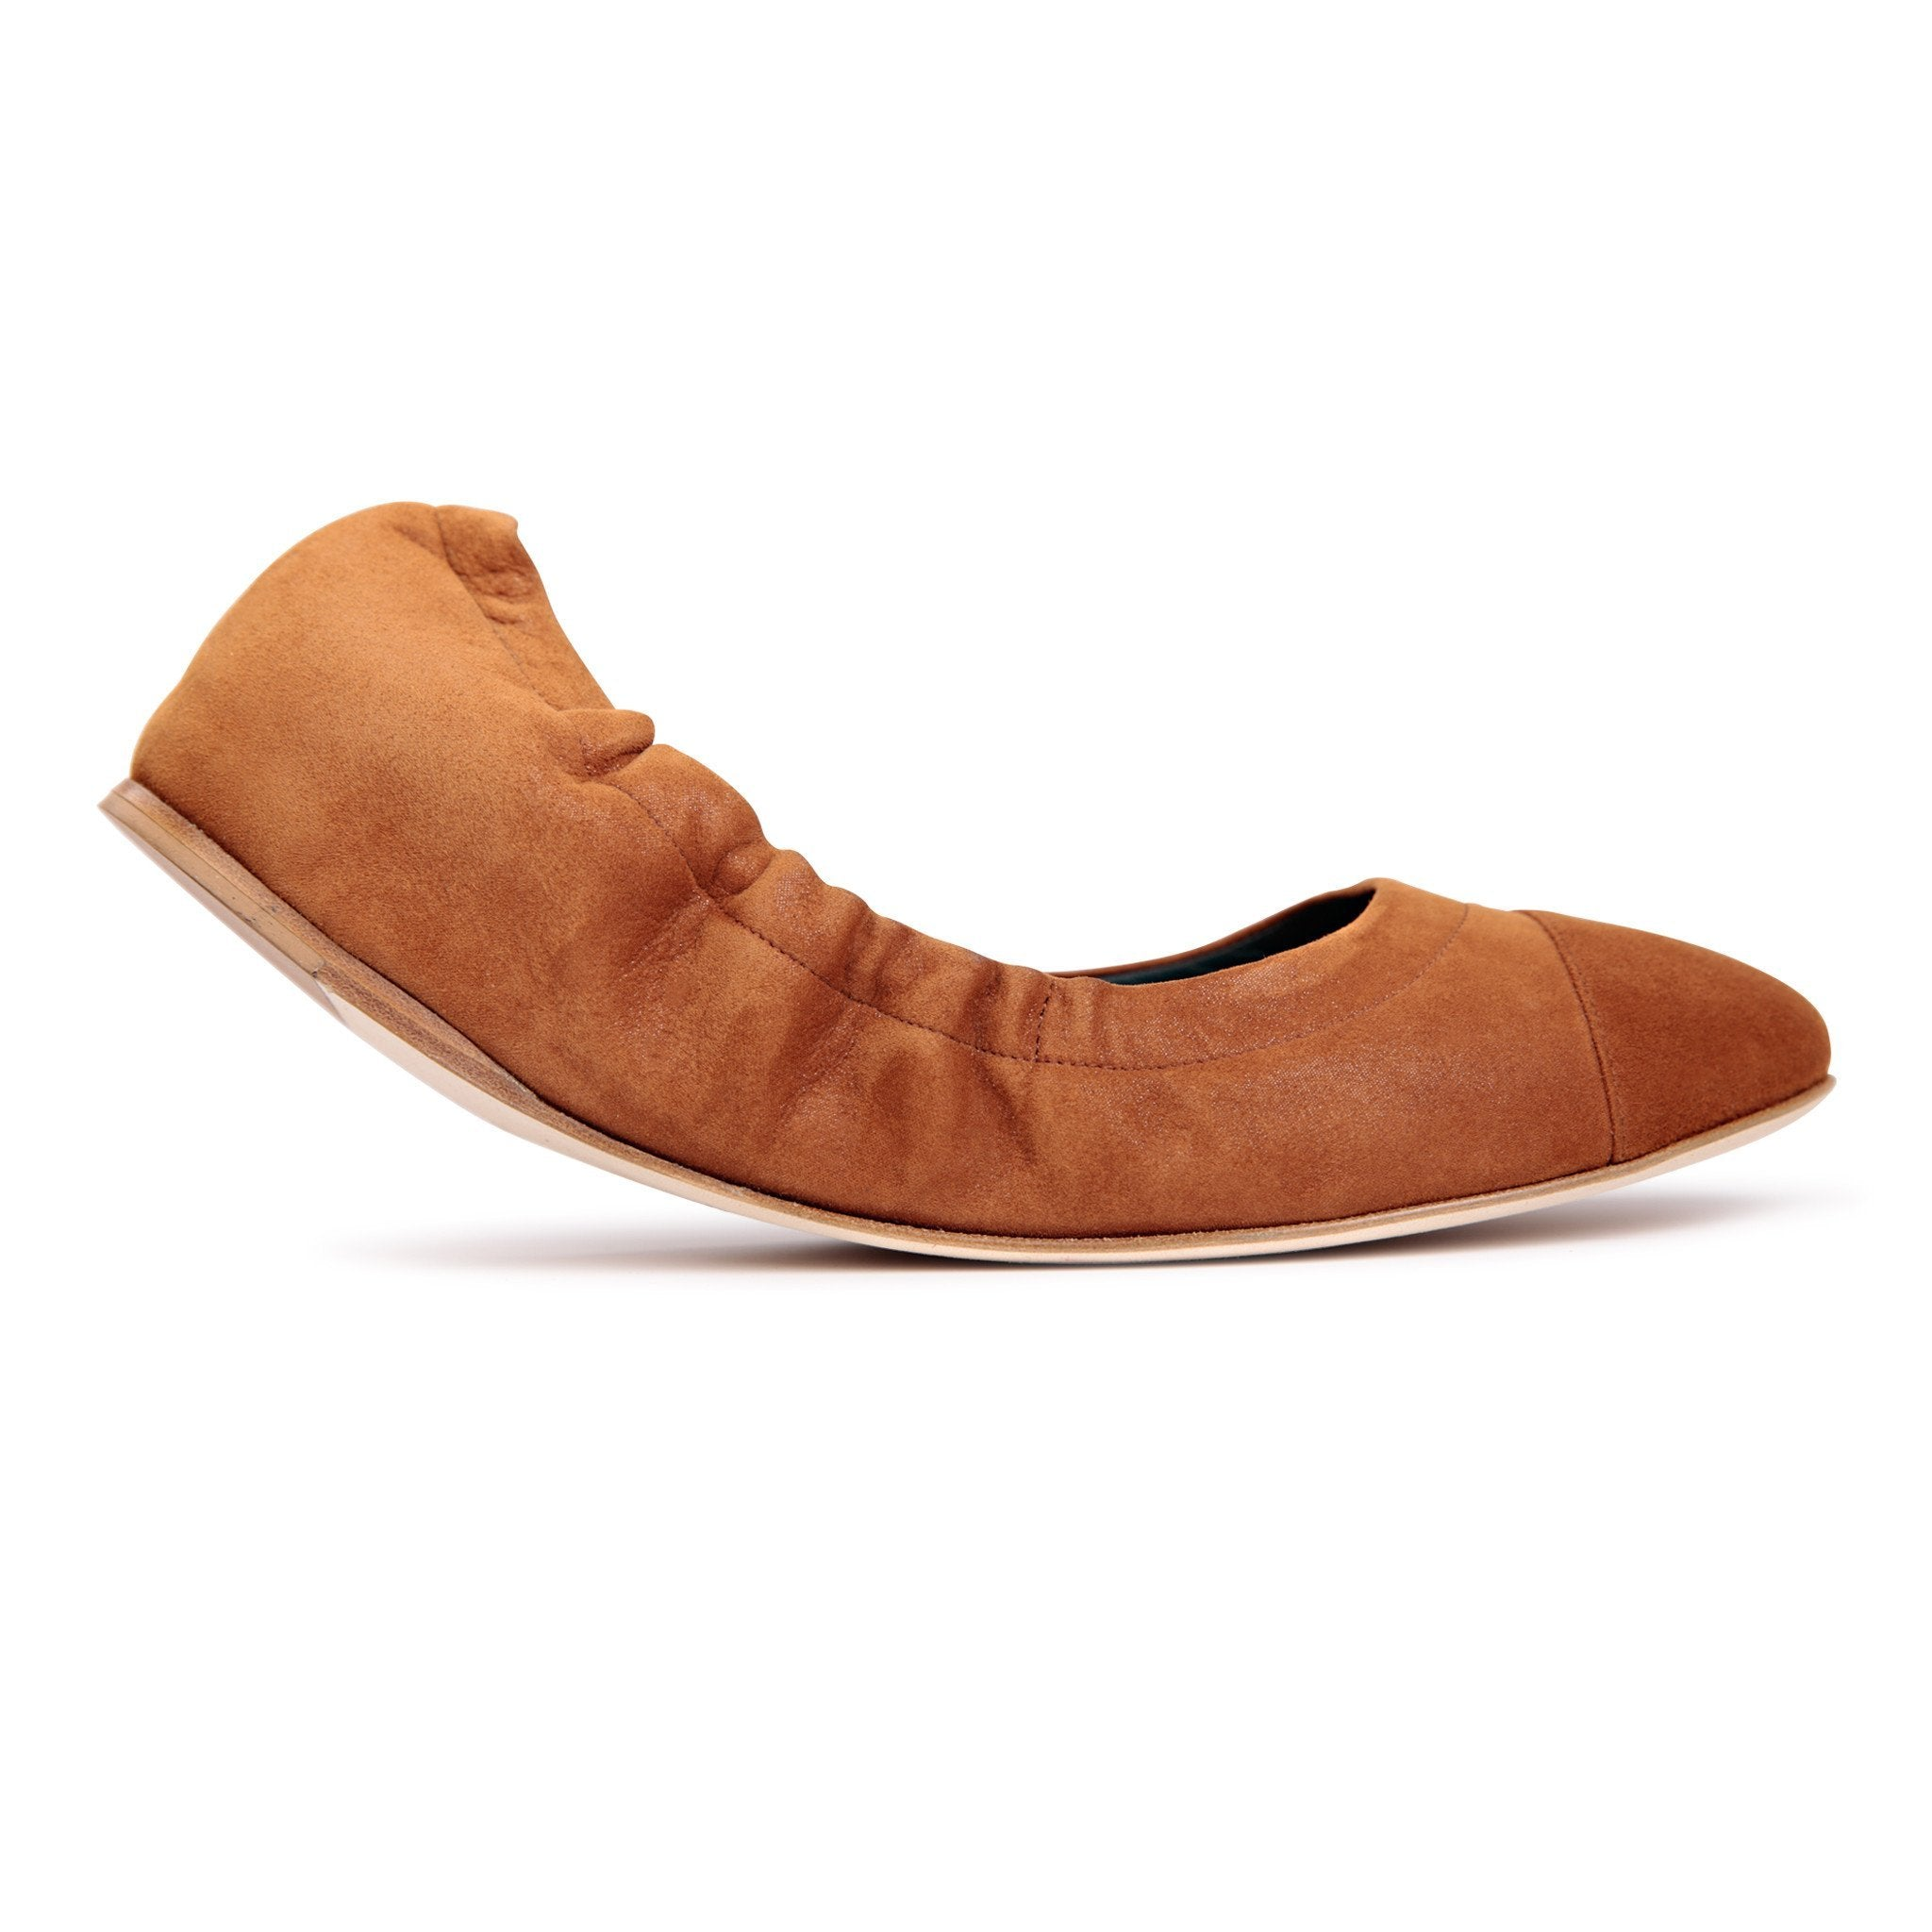 PORTOFINO - Velukid Dune + Matching Toe, VIAJIYU - Women's Hand Made Sustainable Luxury Shoes. Made in Italy. Made to Order.